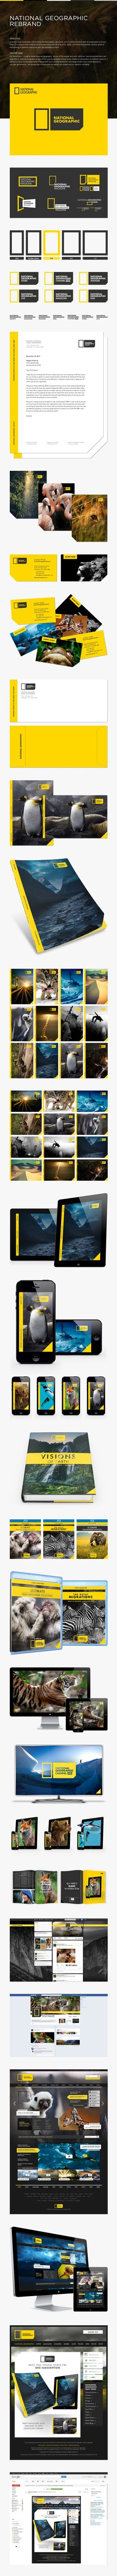 A complete rebranding of National Geographic. The two colors really work here. Adding in different type or views of the rectangle for each way NG is viewed